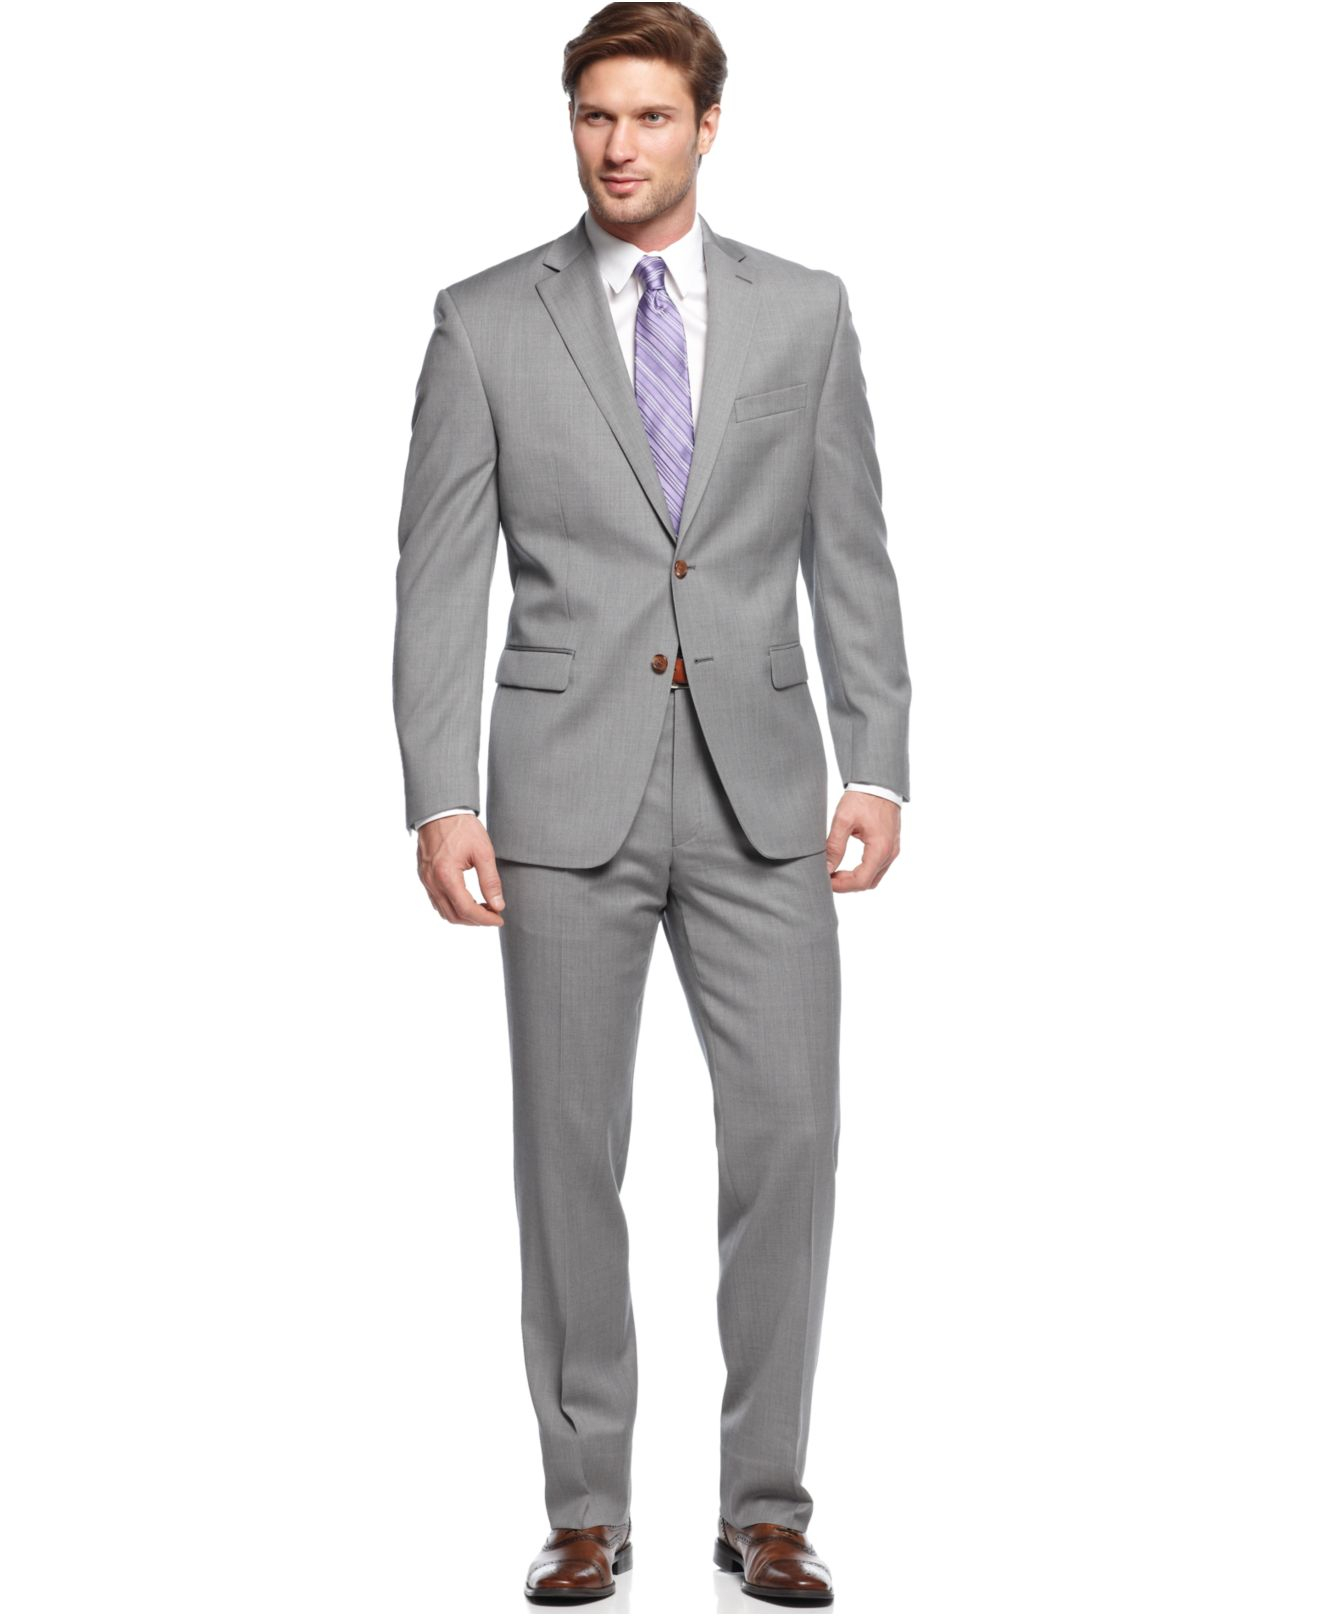 Lauren by ralph lauren Suits Light Grey Solid in Gray for Men | Lyst